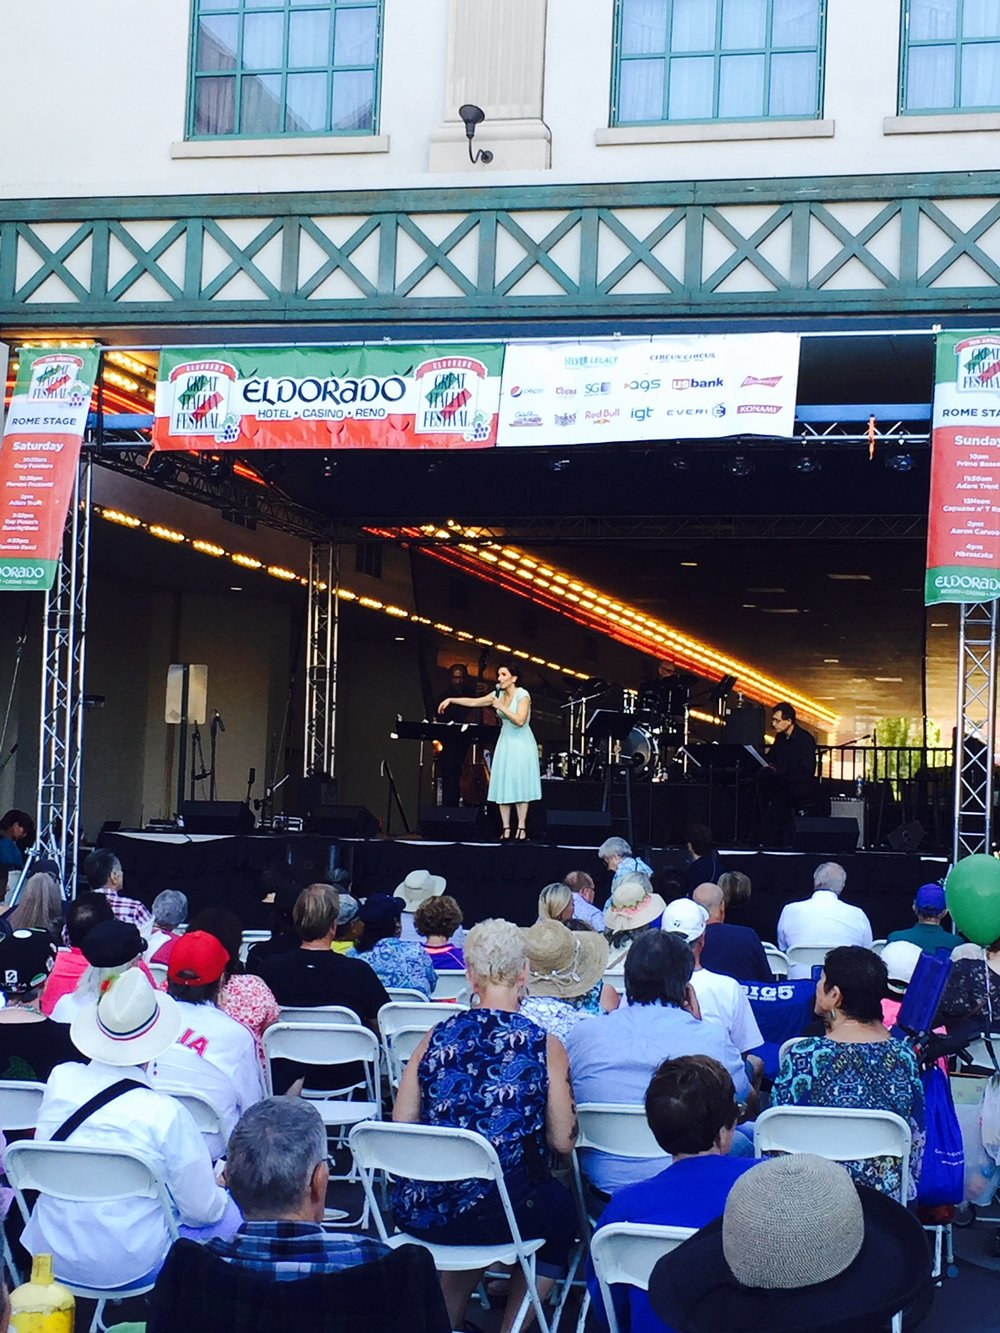 At reno's Great Italian Festival in Nevada.